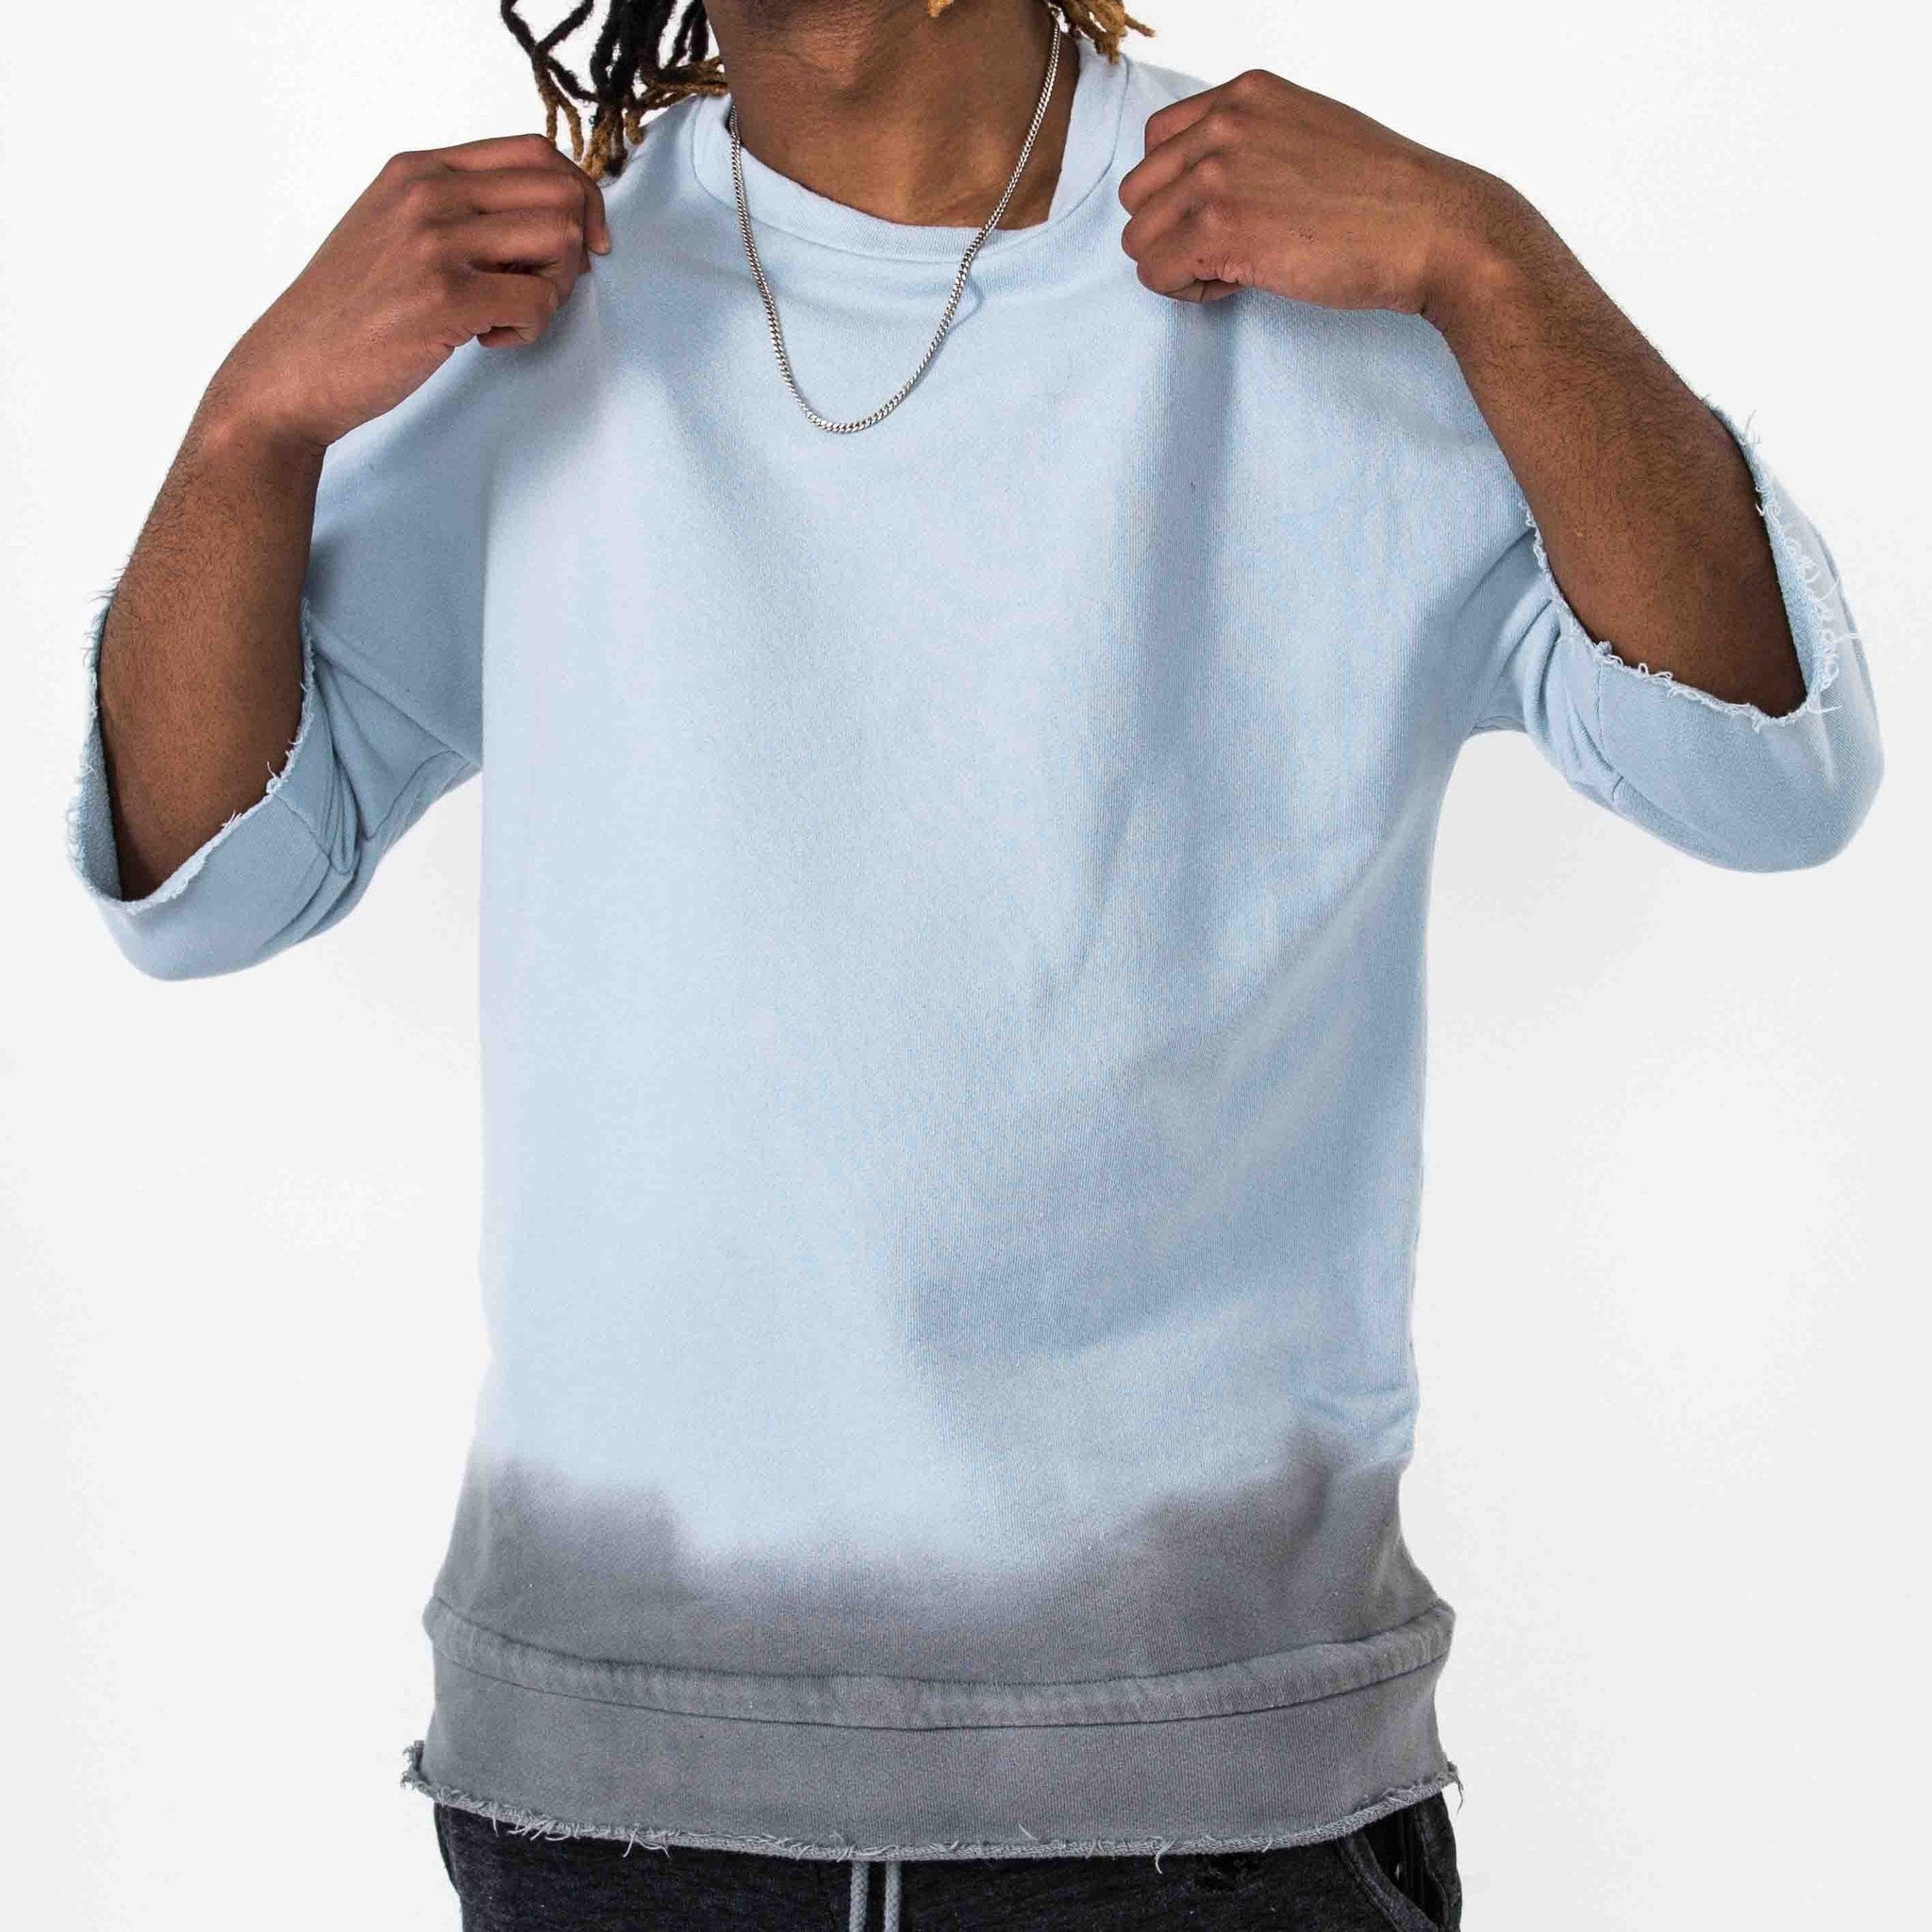 Dip Dyed Crewneck - Blue/Grey - The GLD Shop